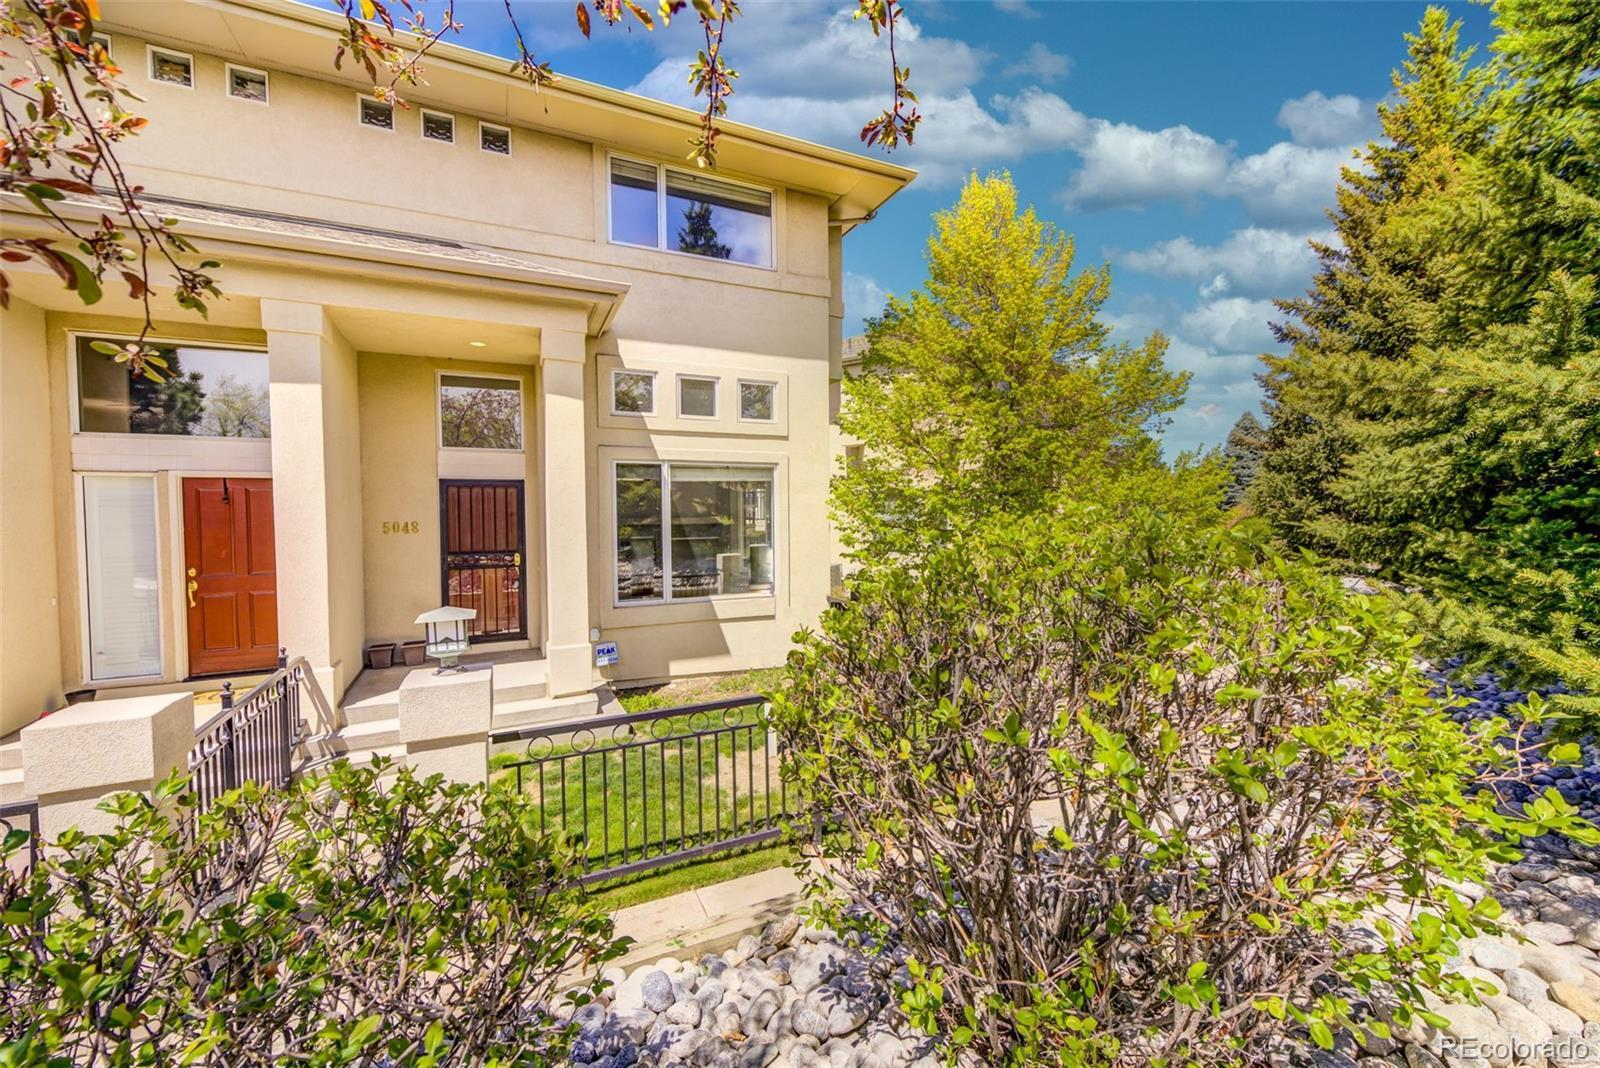 5048 E Cherry Creek South Drive, Denver, CO 80246 - #: 5640180